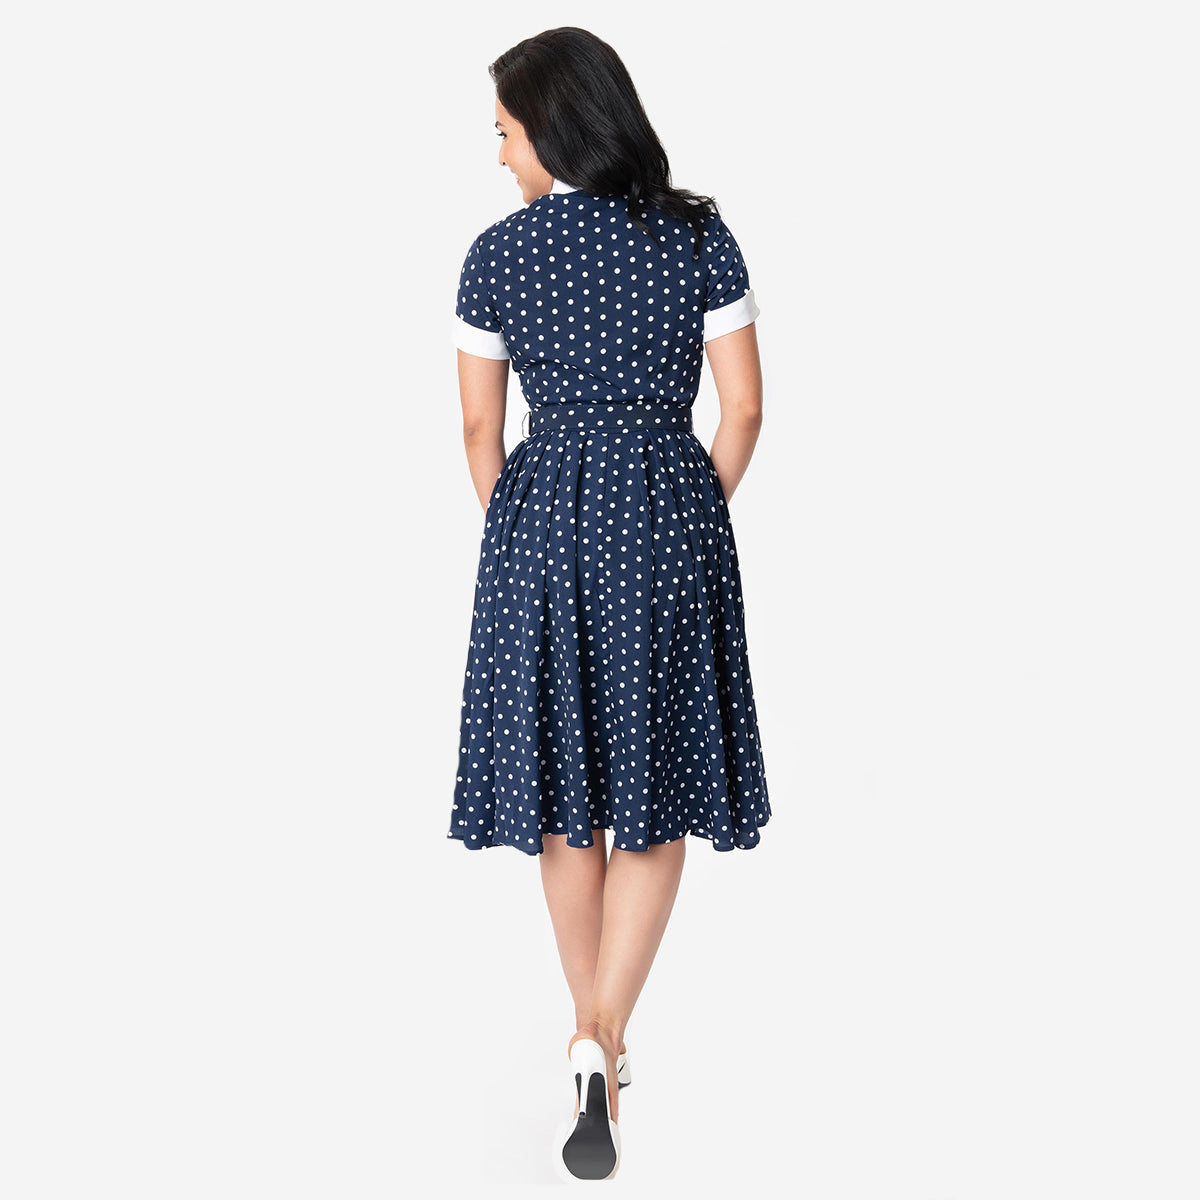 I Love Lucy x Unique Vintage: The Ricardo Polka Dot Swing Dress